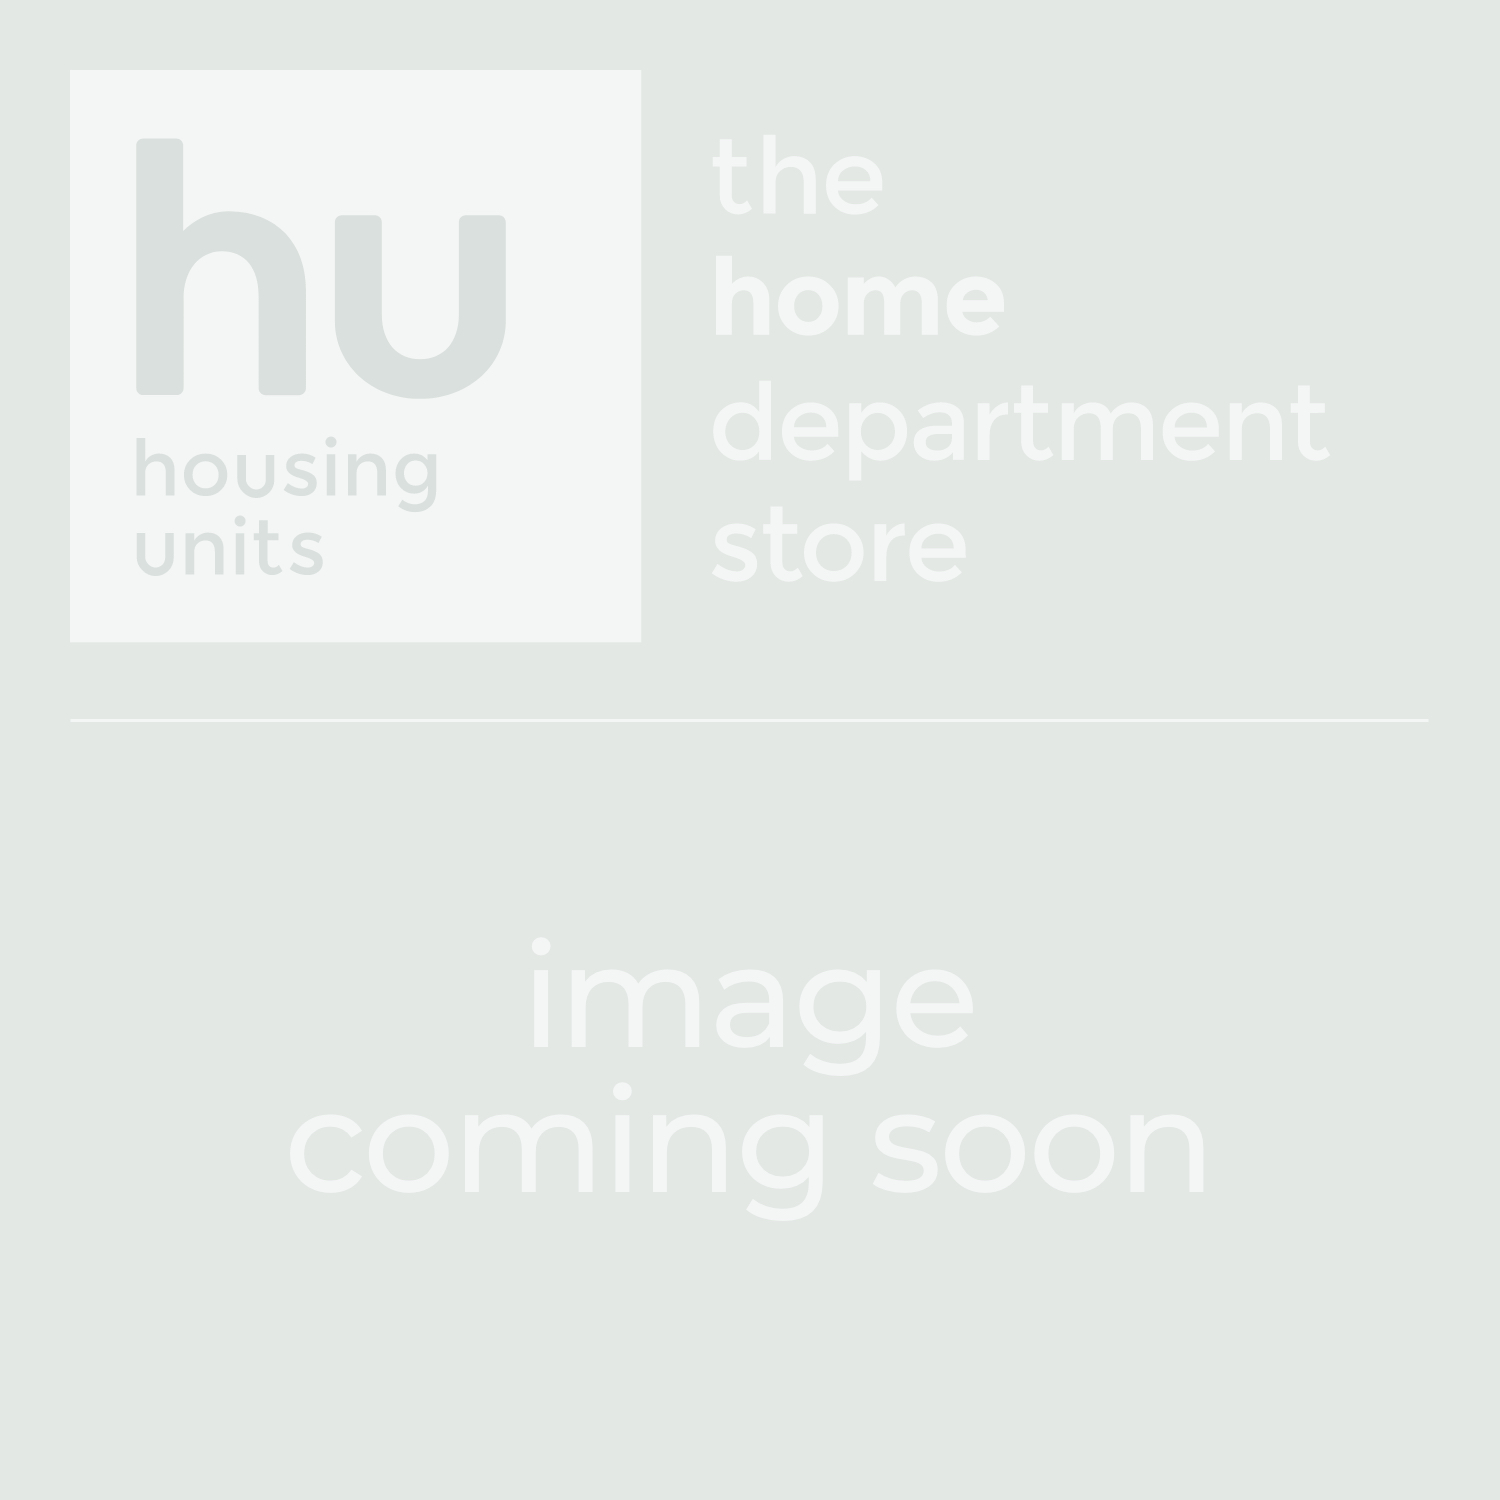 DRU Global 55XT Balanced Flue Gas Fire | Housing Units